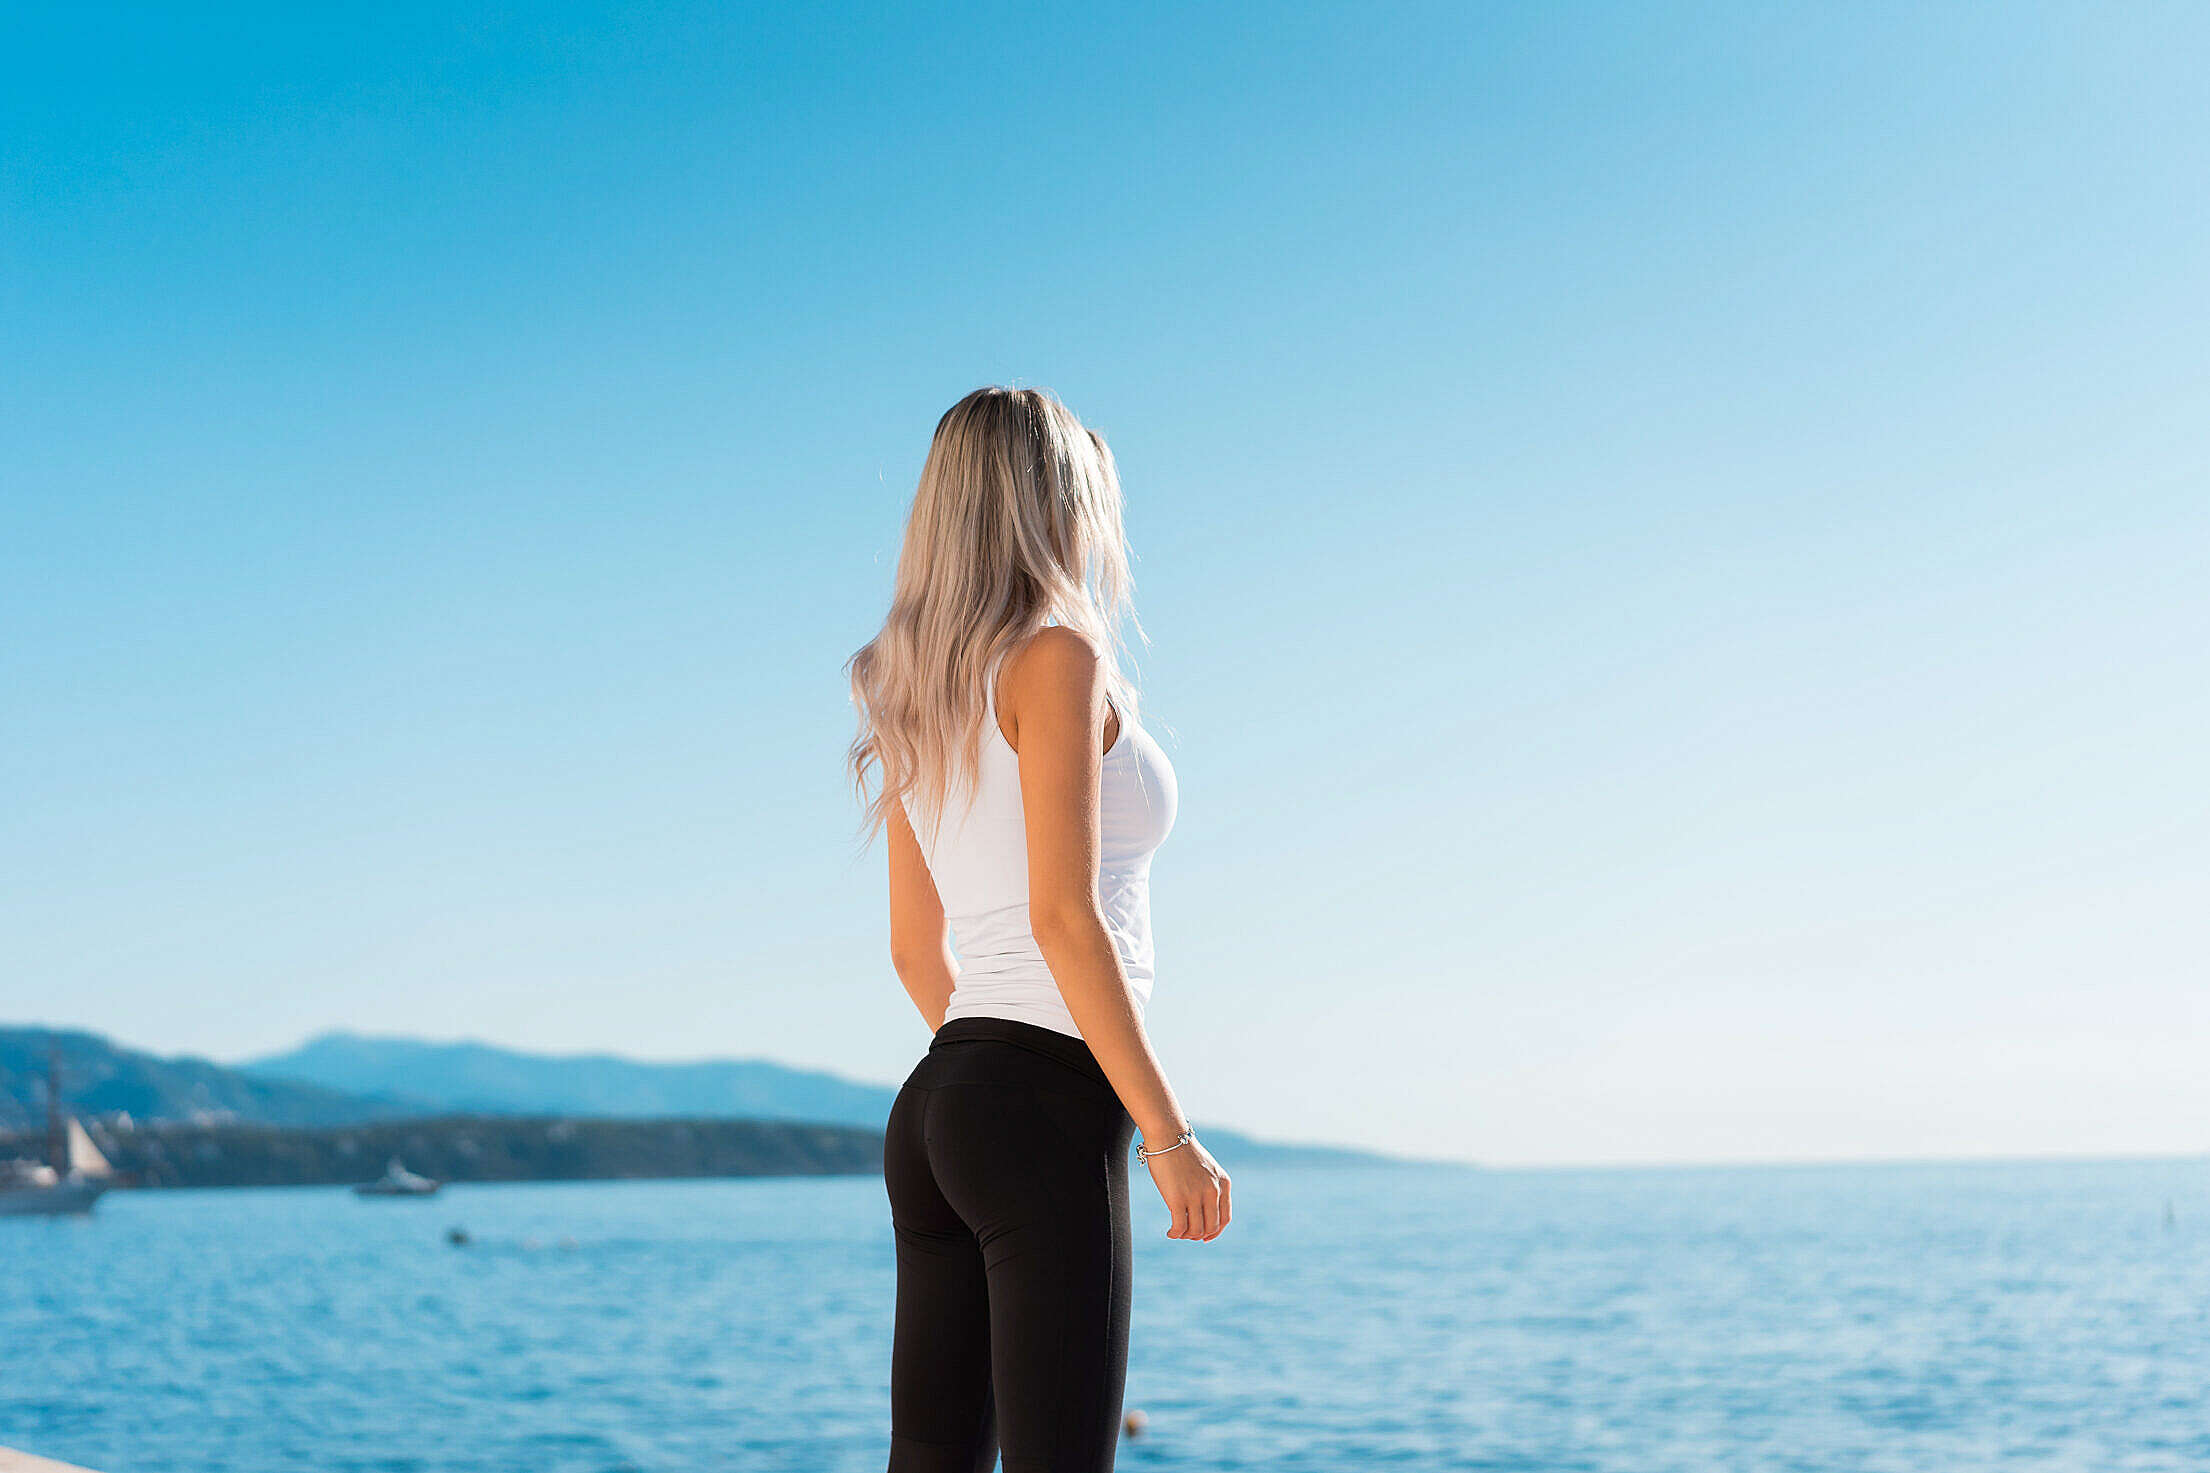 Young Fitness Woman Overlooking the Sea in the Morning Free Stock Photo